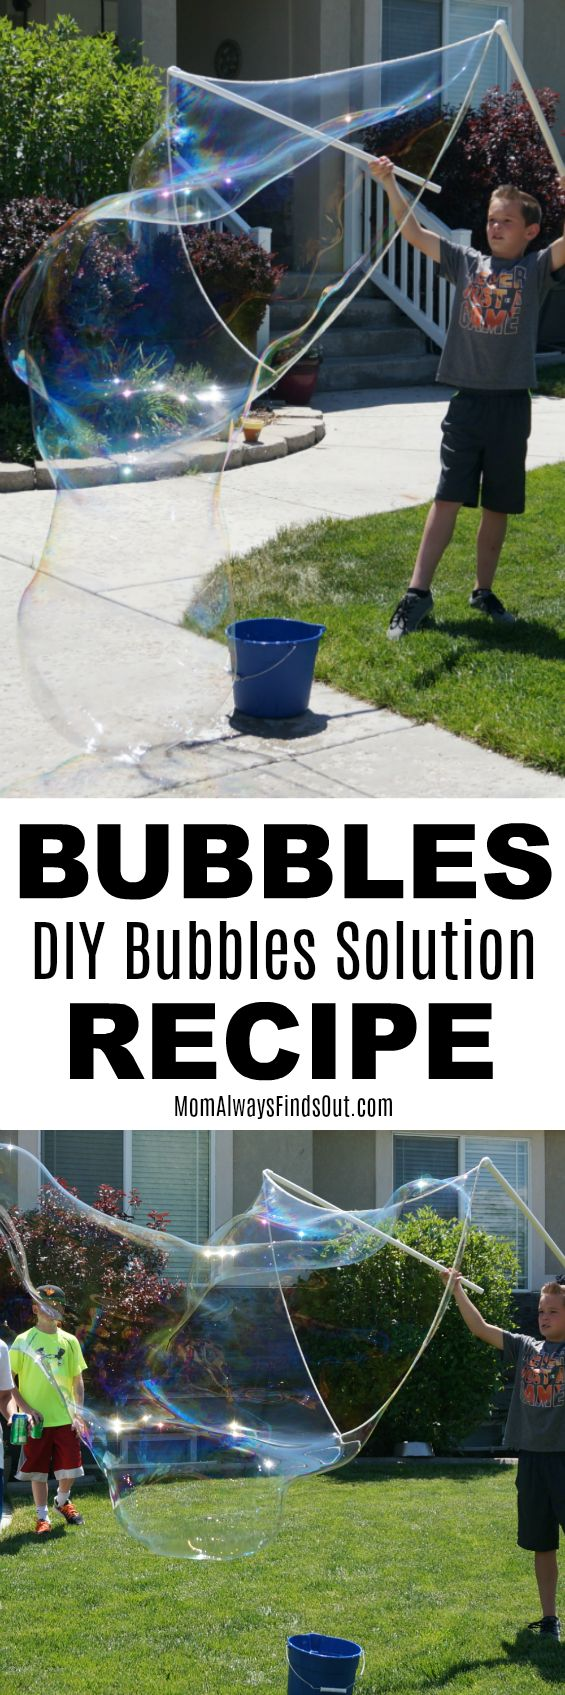 Homemade Bubbles Solution Recipe - Easy and it makes GREAT bubbles!